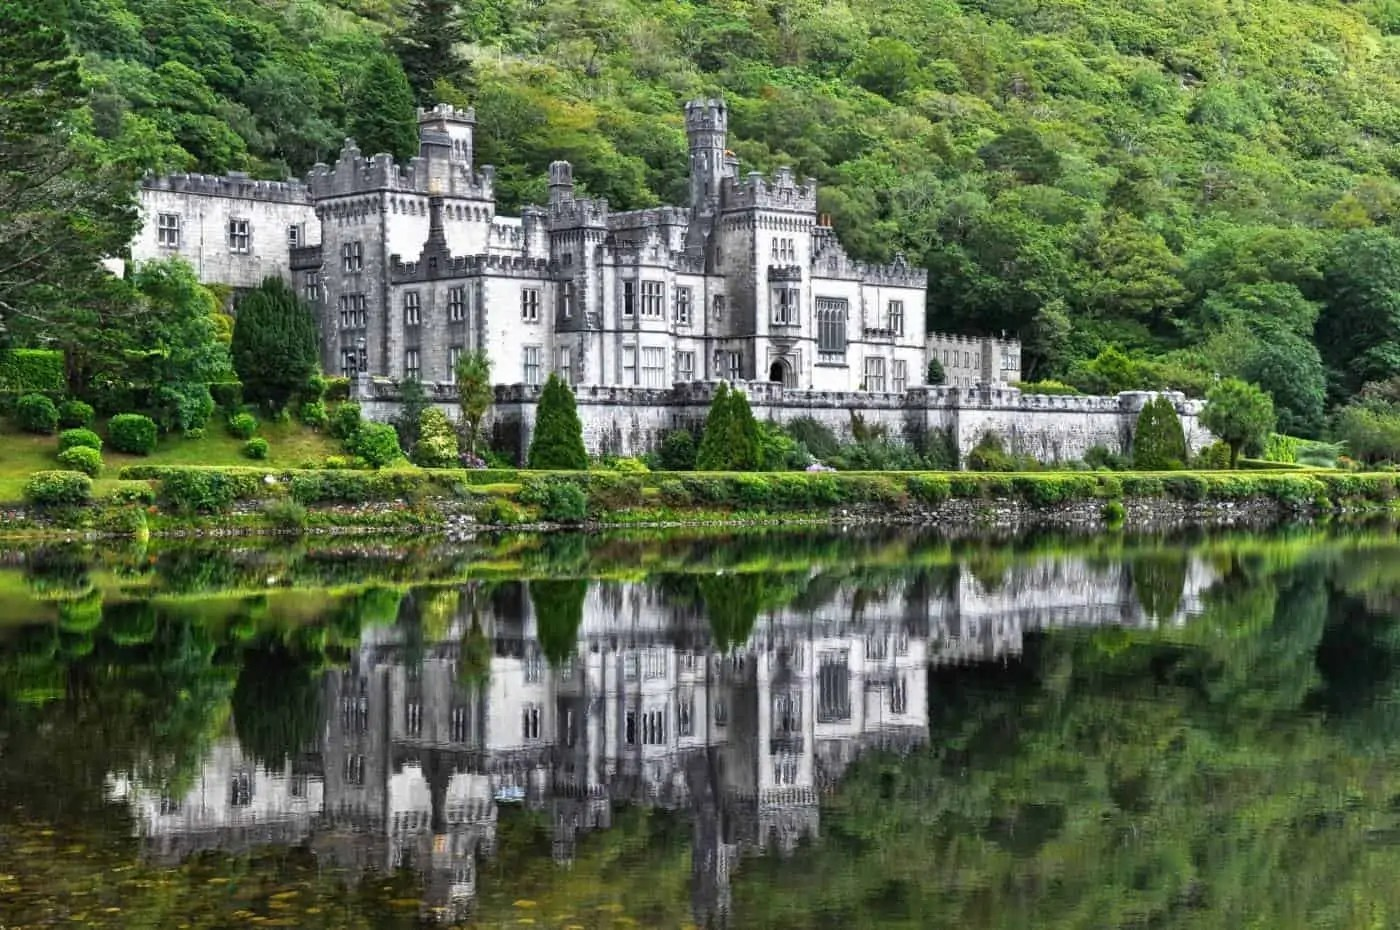 Kylemore Abbey | c/o Deposit Photos